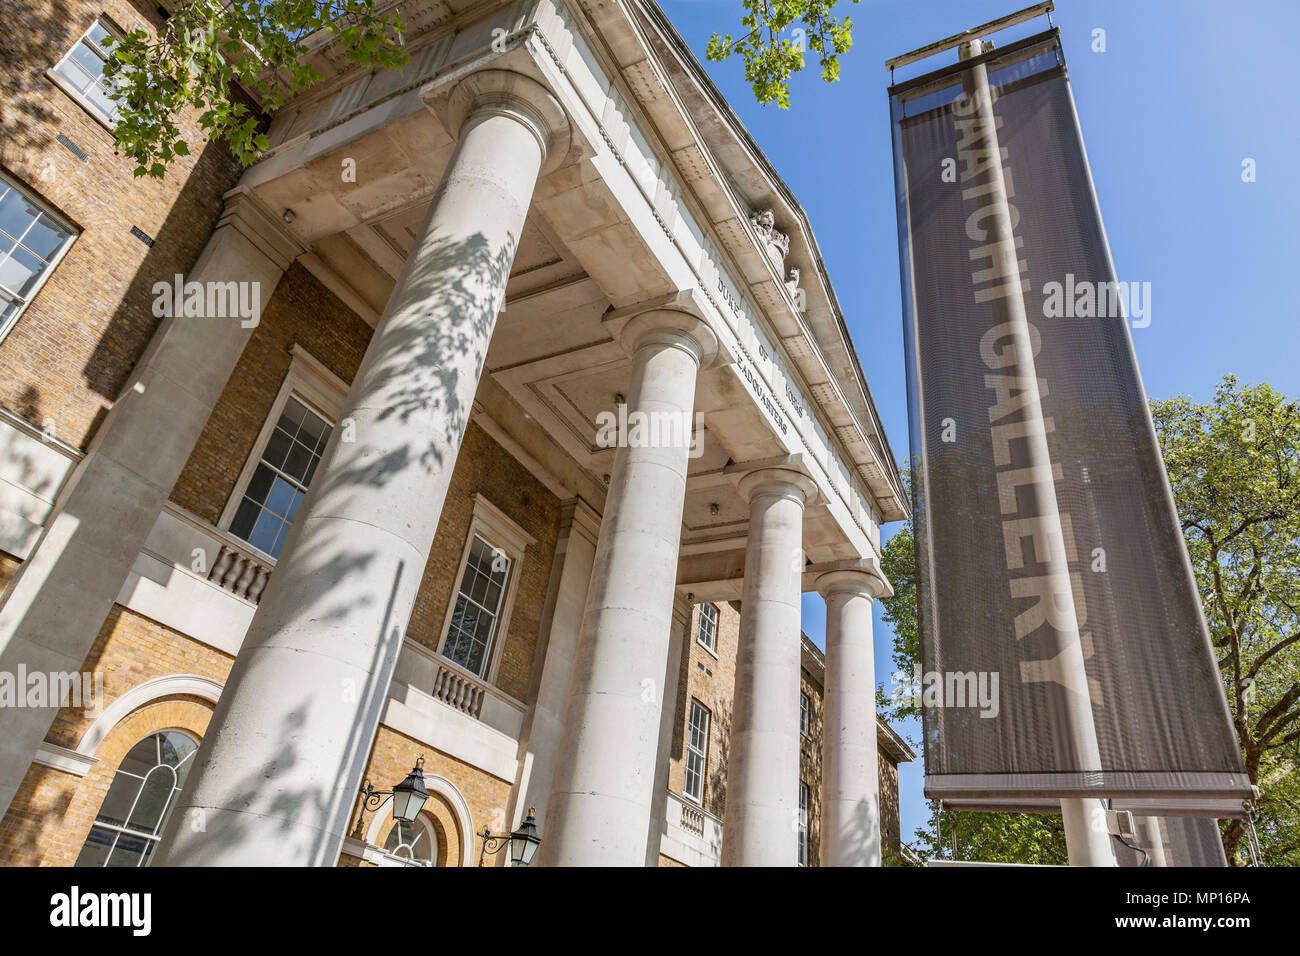 Entrance to the Saatchi Gallery in Chelsea, London - Stock Image